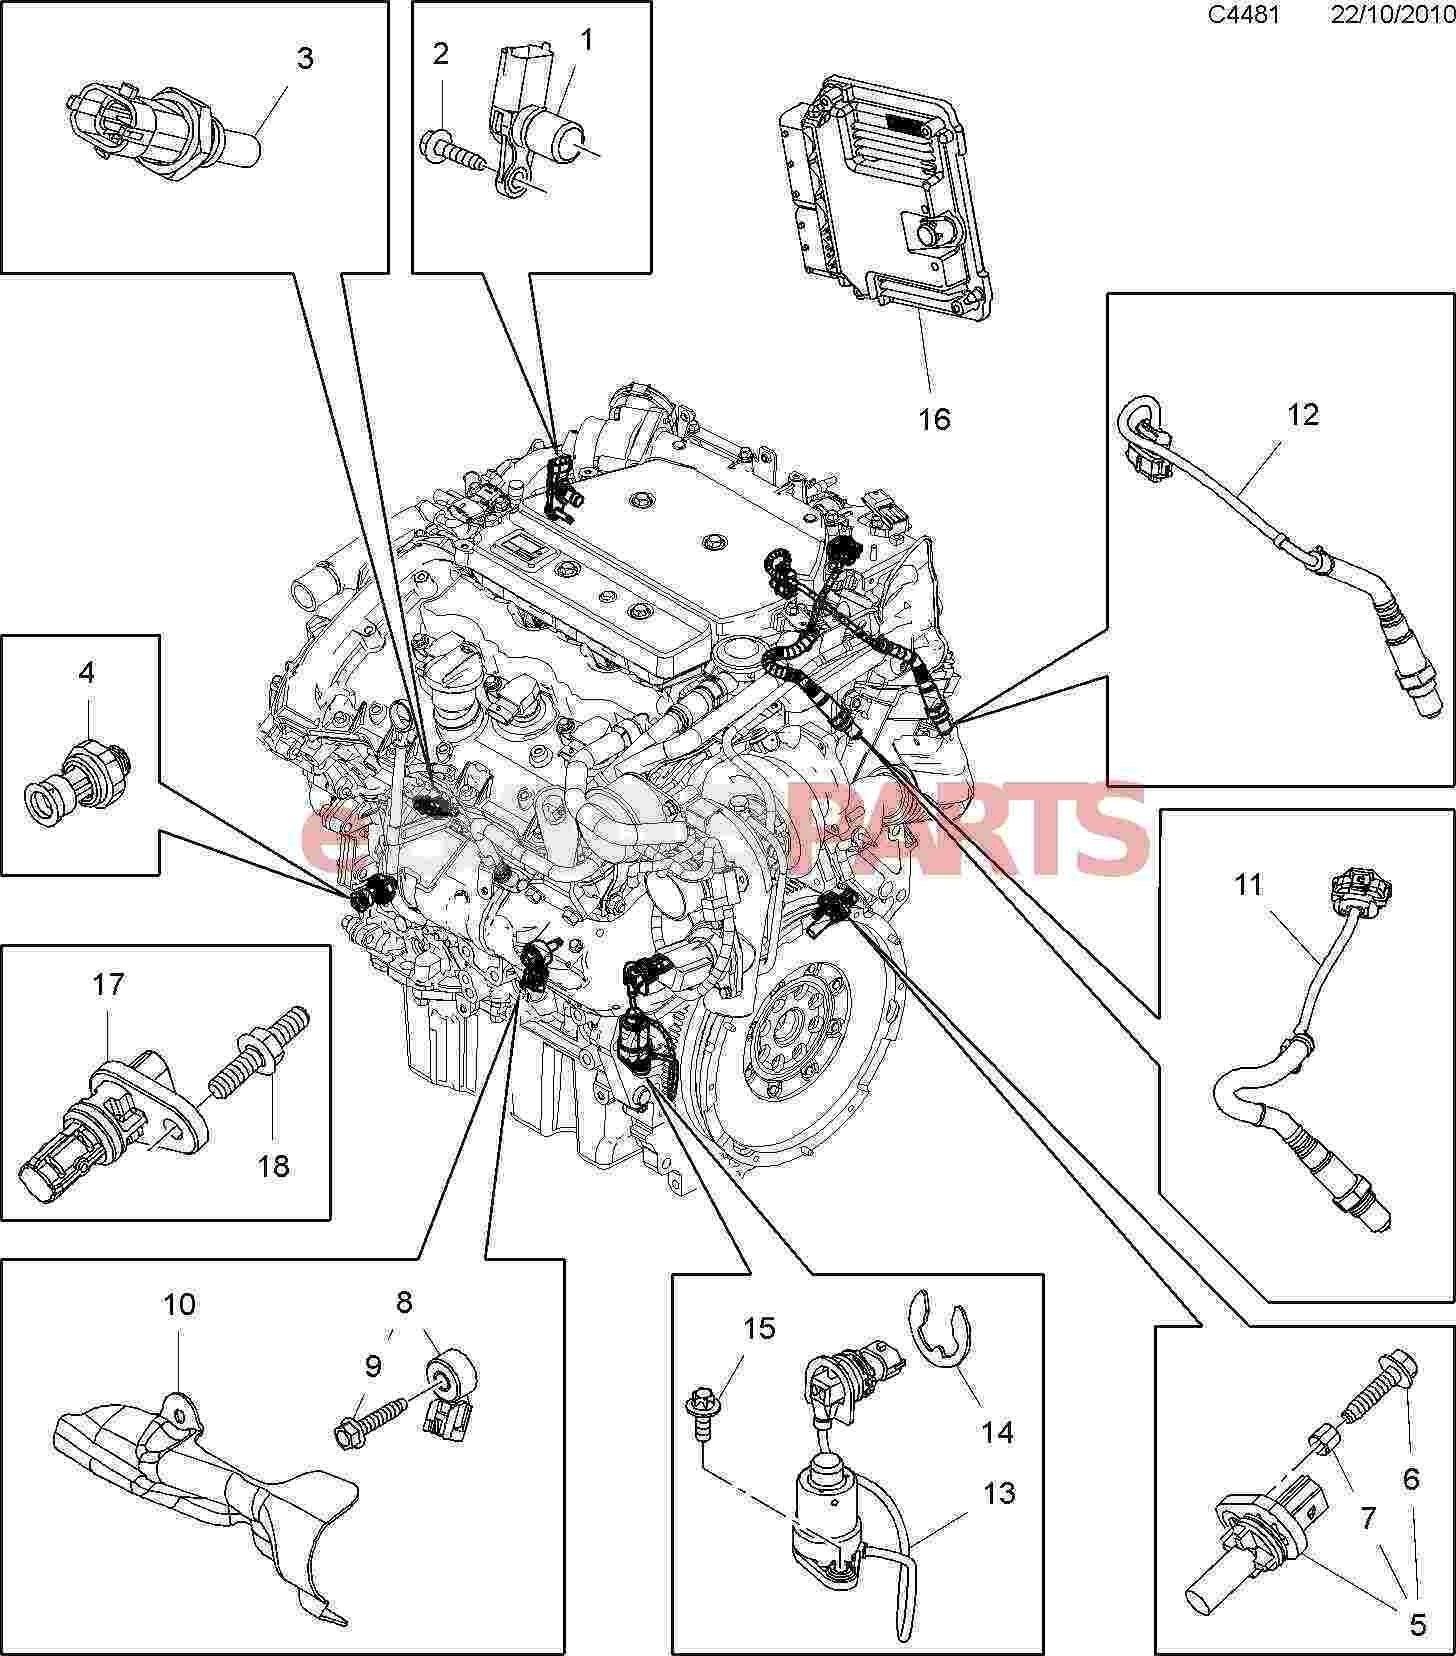 Saab 93 Engine Diagram Wiring Diagram Fat Reguler Fat Reguler Consorziofiuggiturismo It